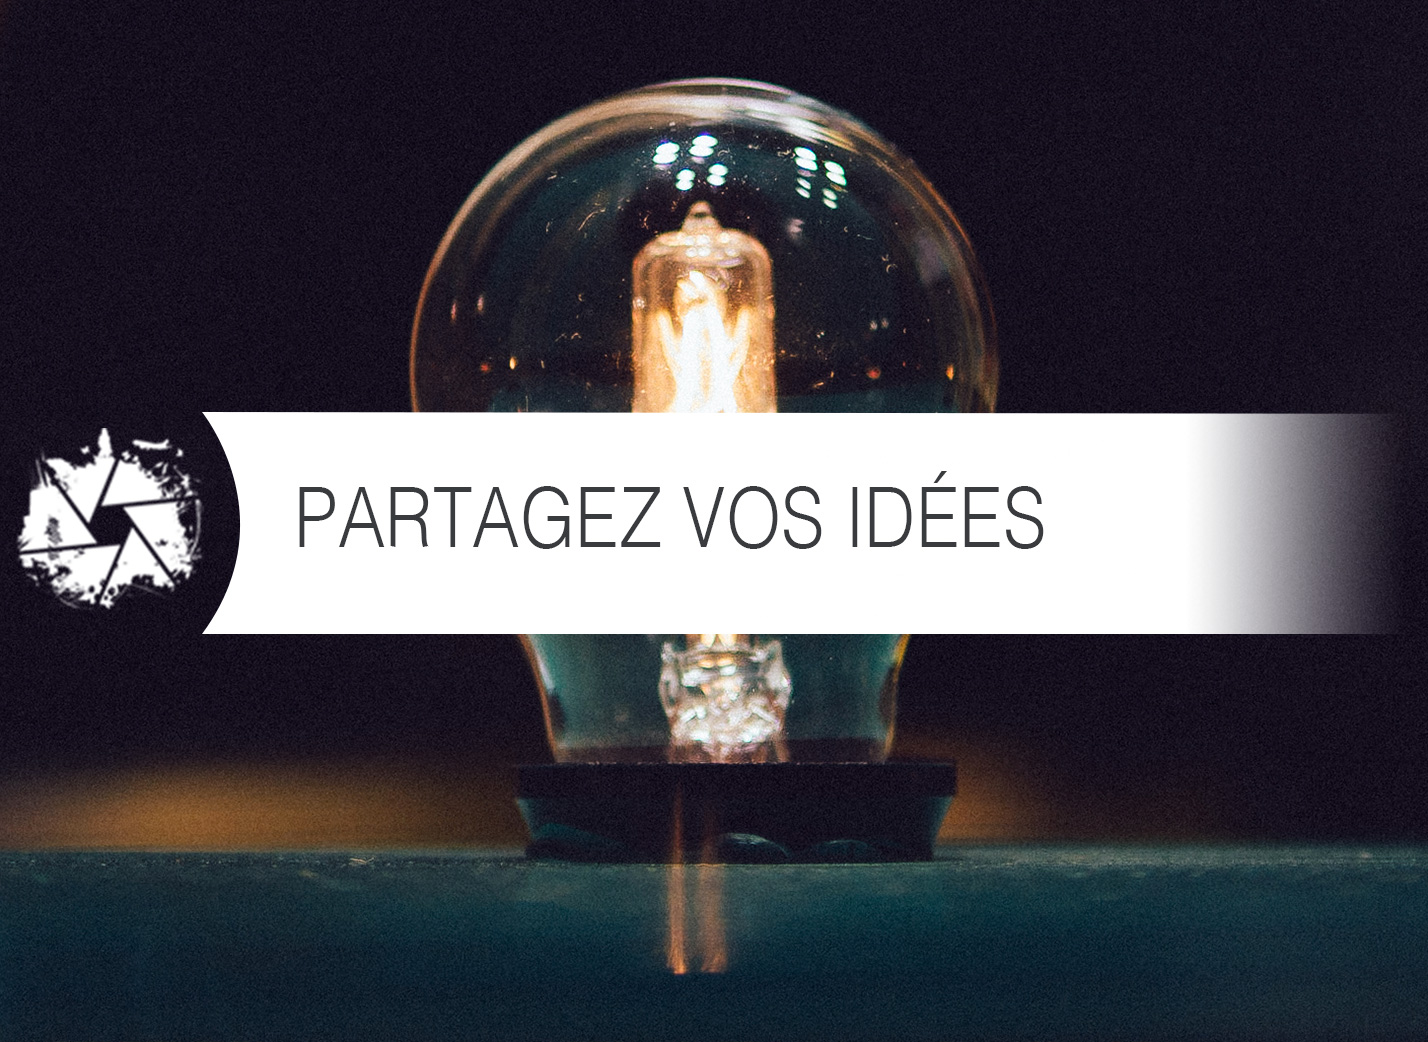 Partagez vos id es mindset nicolas croce photo for Idee commerce qui rapporte